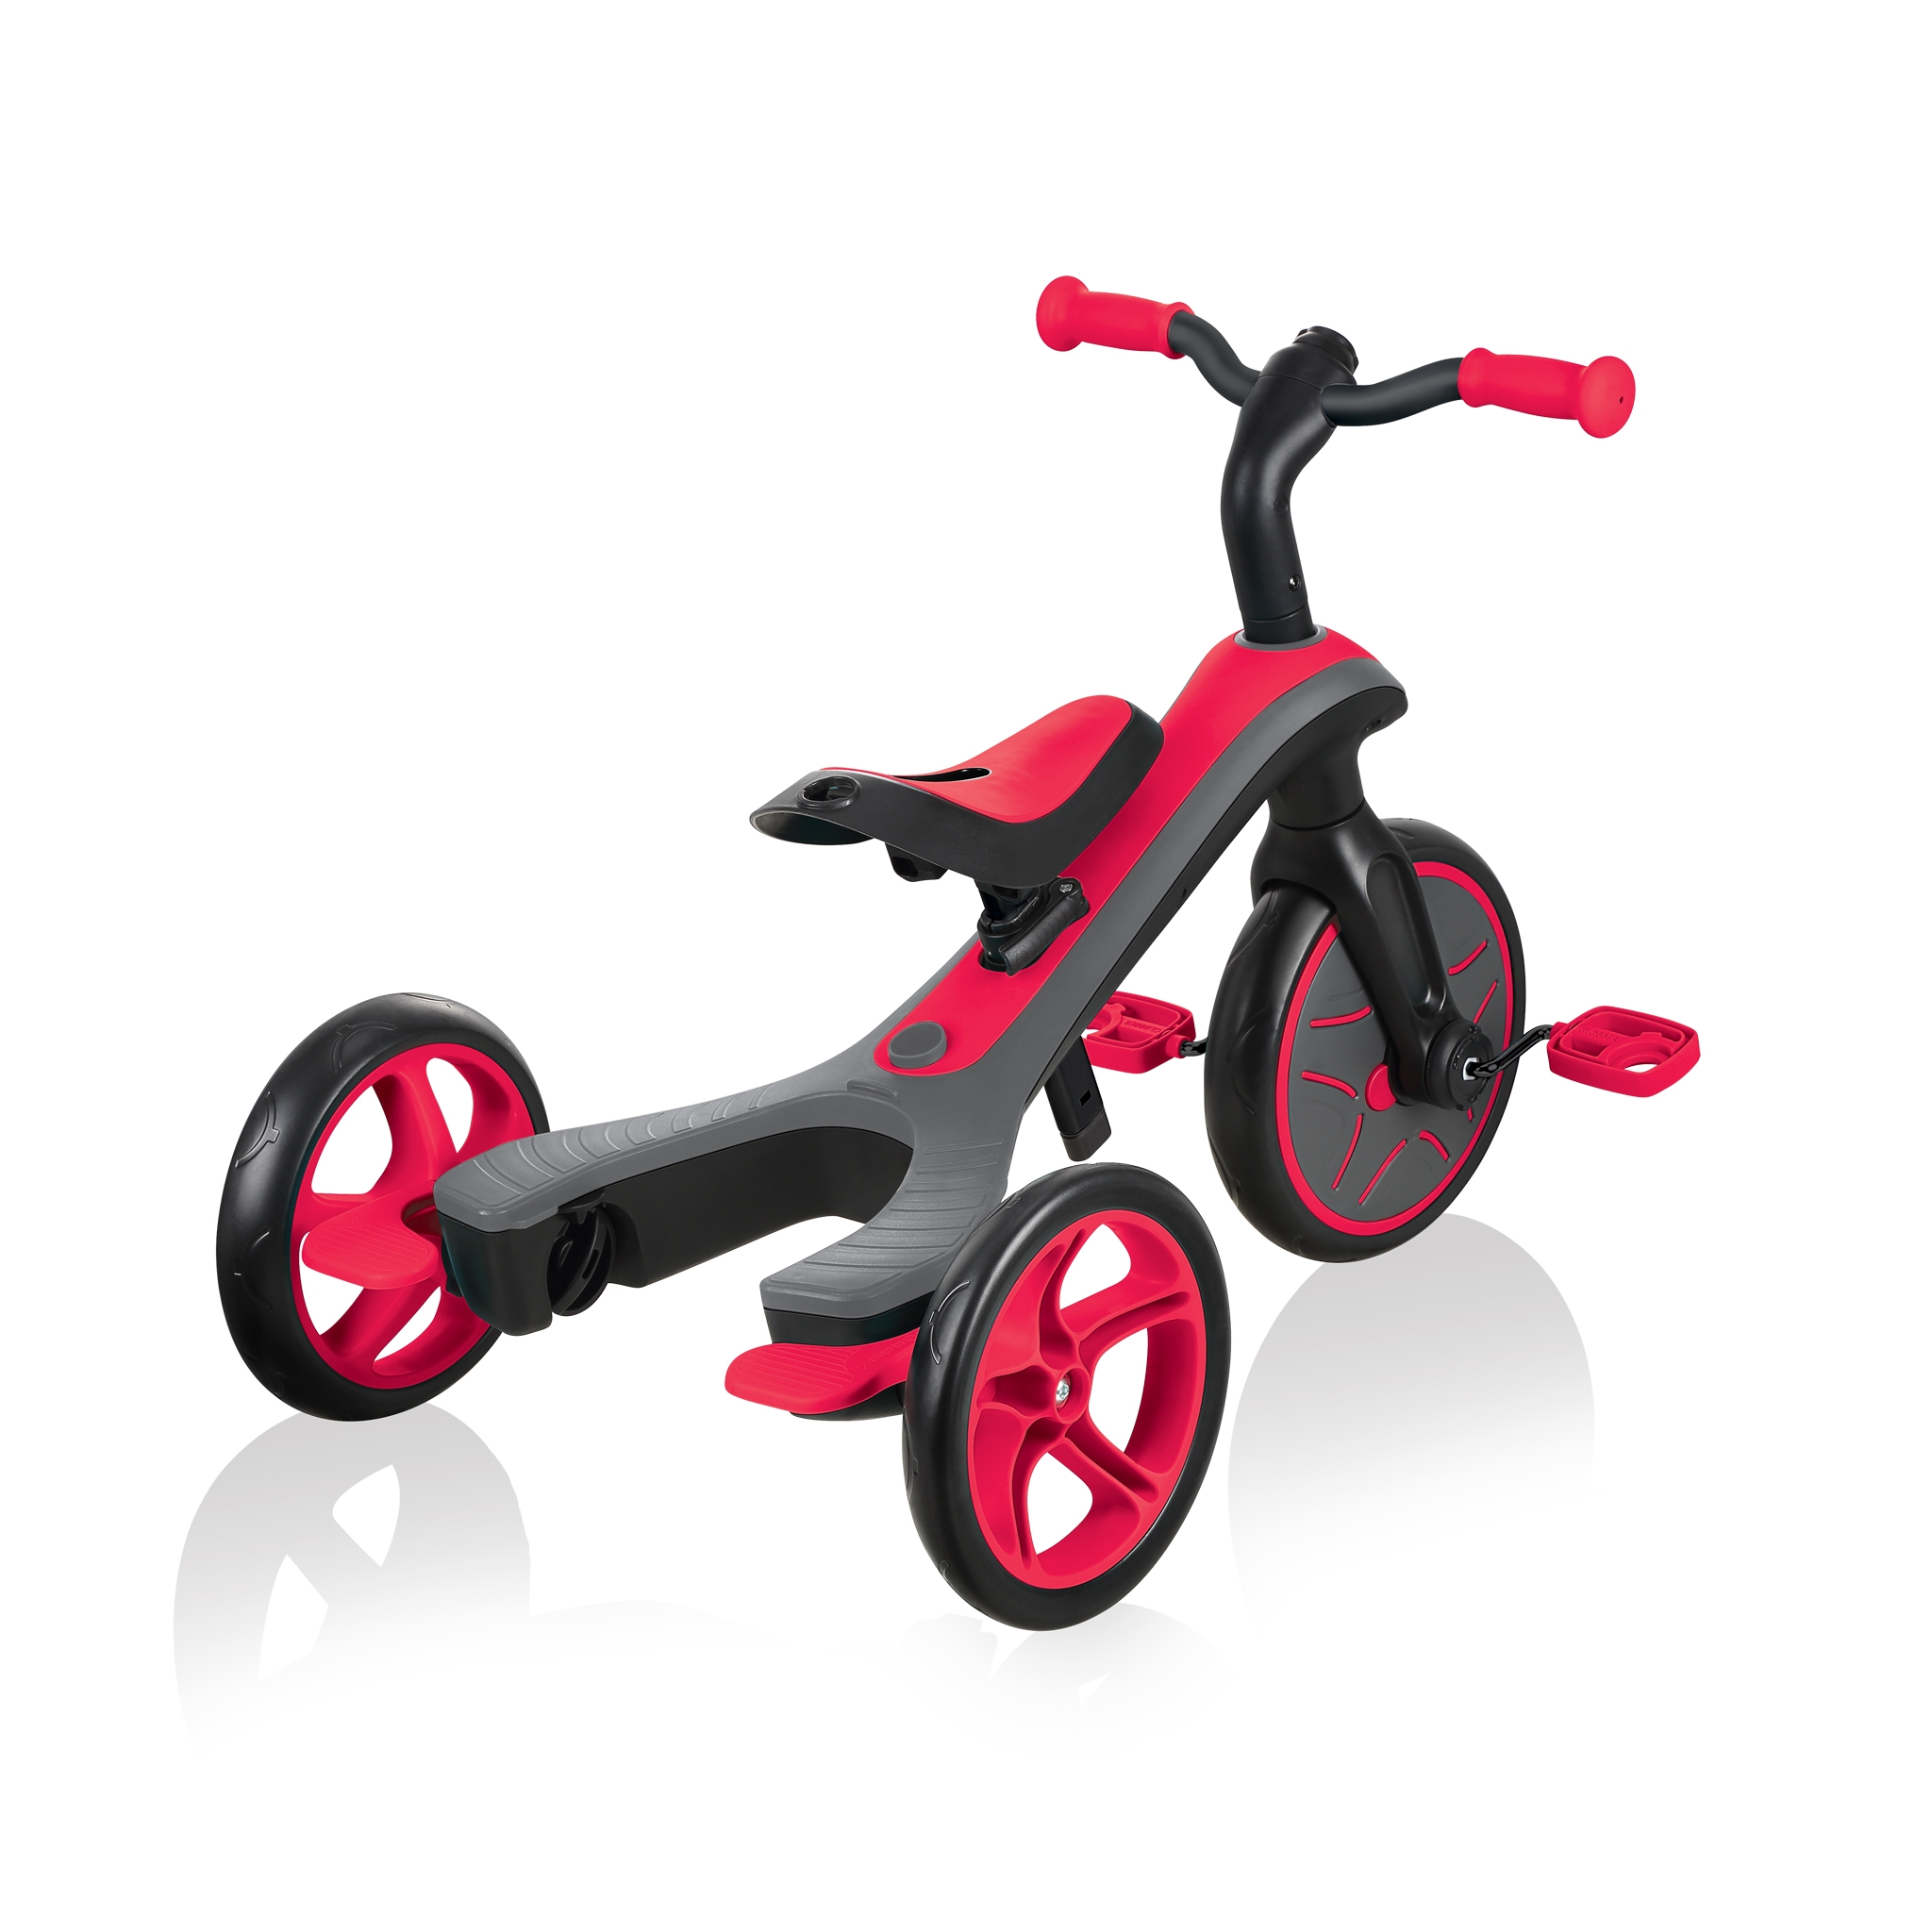 Globber-EXPLORER-TRIKE-4in1-all-in-one-baby-tricycle-and-kids-balance-bike-with-patented-wheel-mechanism-transformation 8